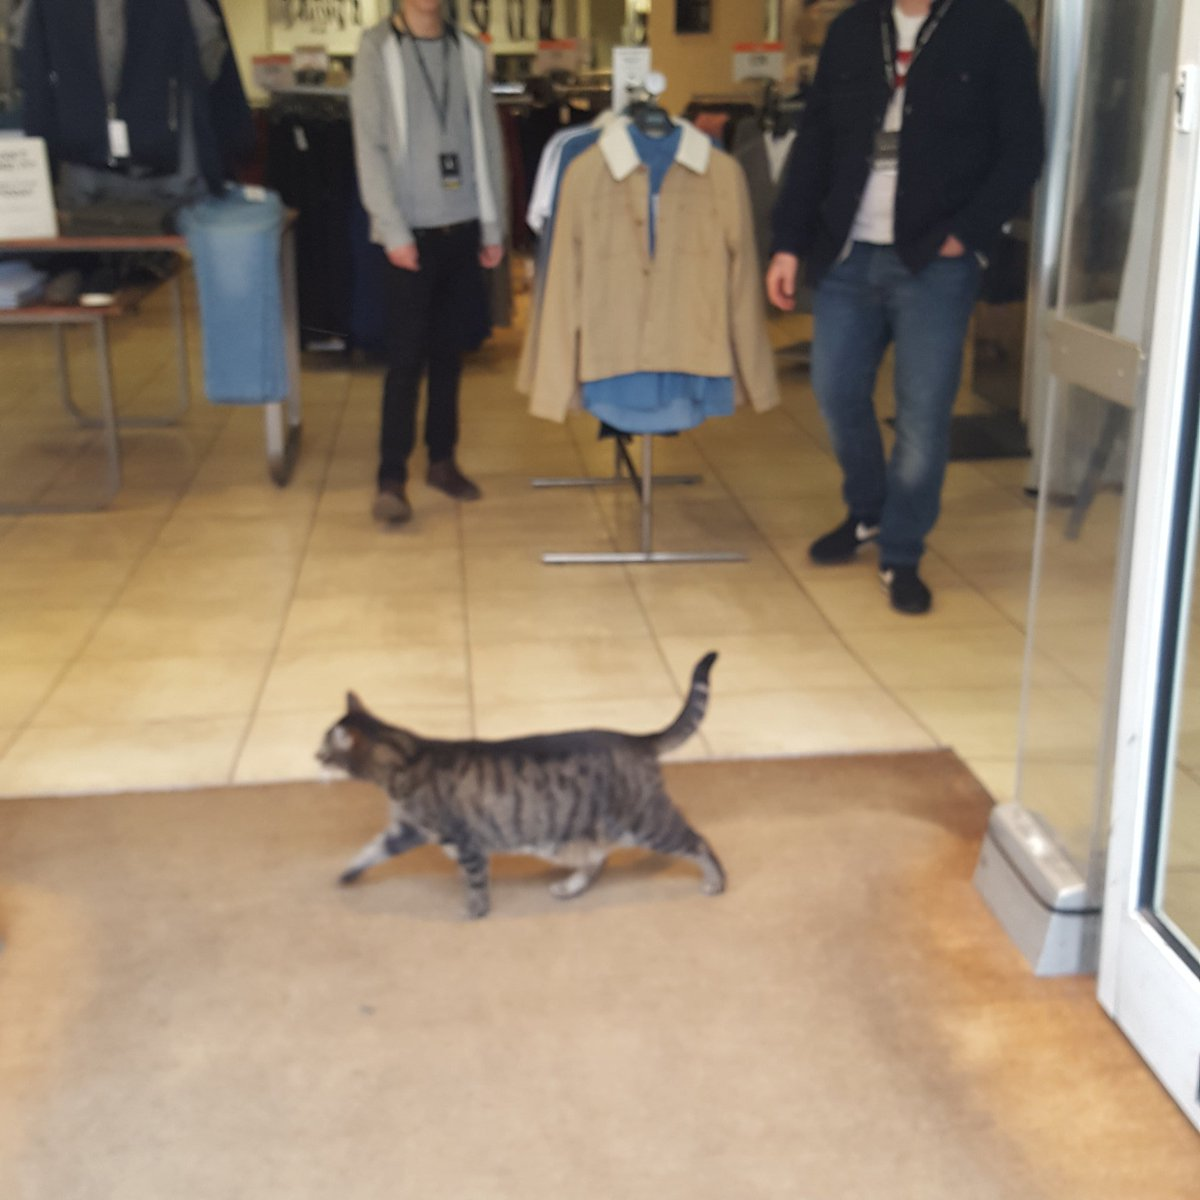 Anyone in #Bath know this cat? He's shopping in Burton at the moment. @WeLoveBath @BathEcho https://t.co/nJ692aXyzs